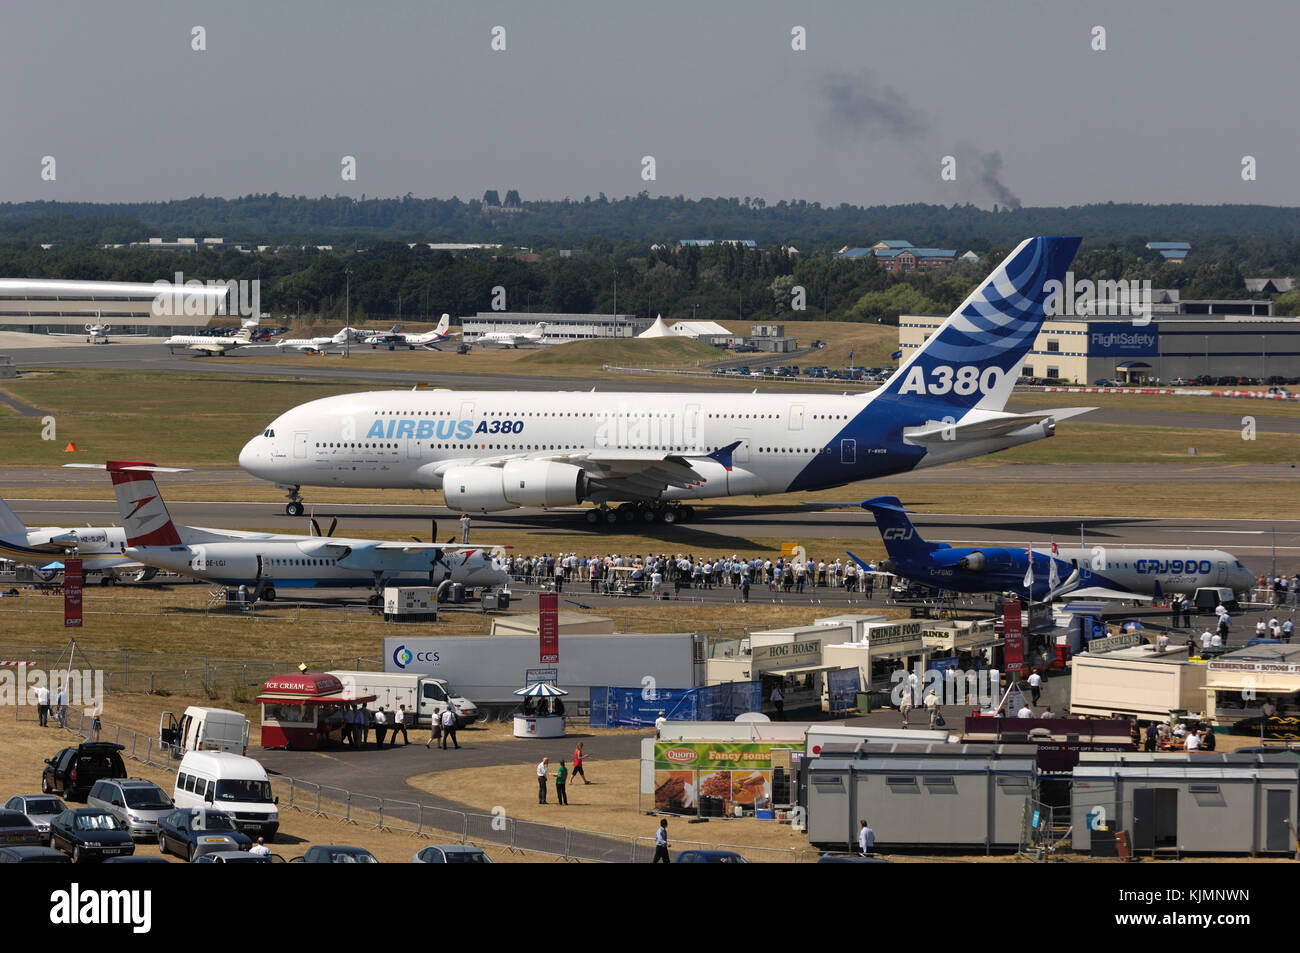 Airbus A380-800 taxiing with the Bombardier CRJ-900 and